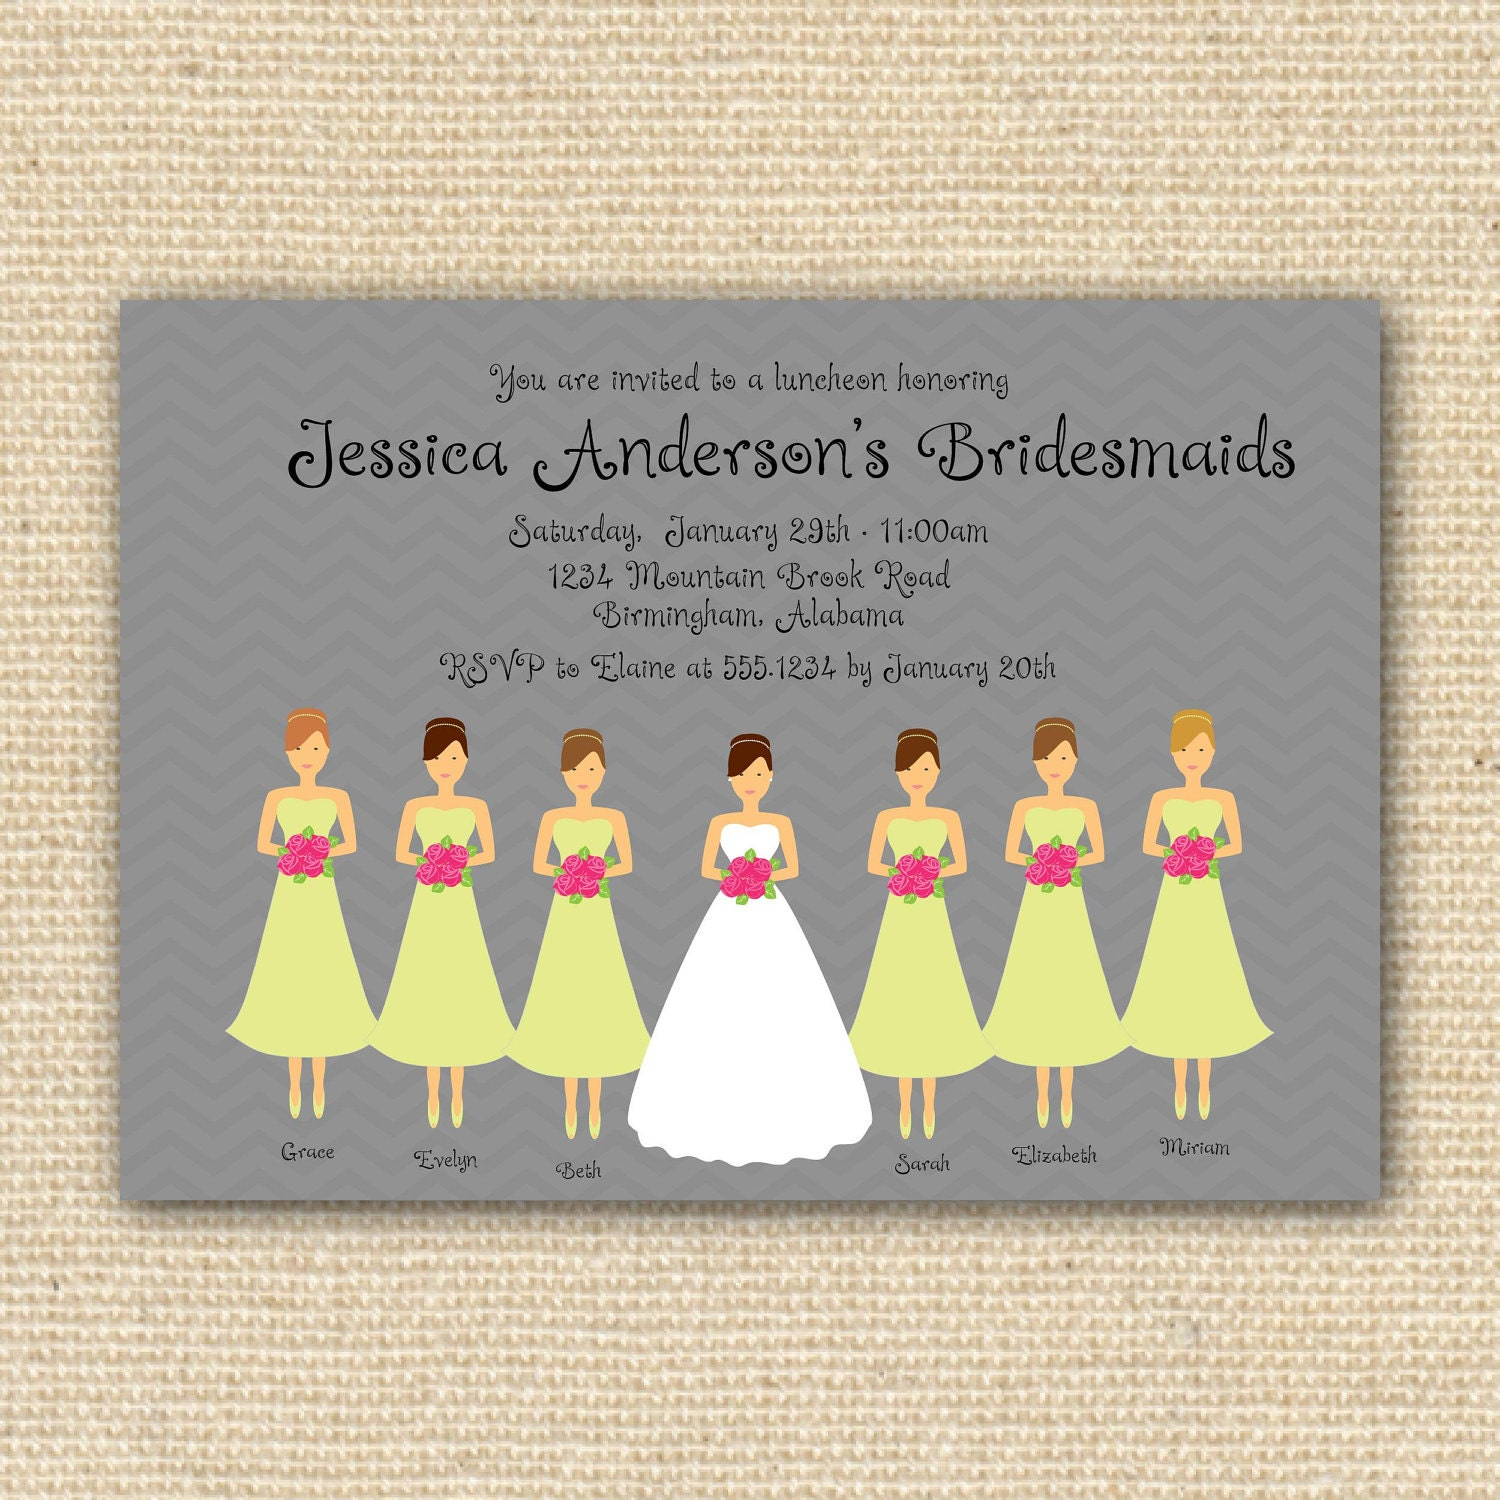 Bridesmaid Luncheon Invitations with beautiful invitations template